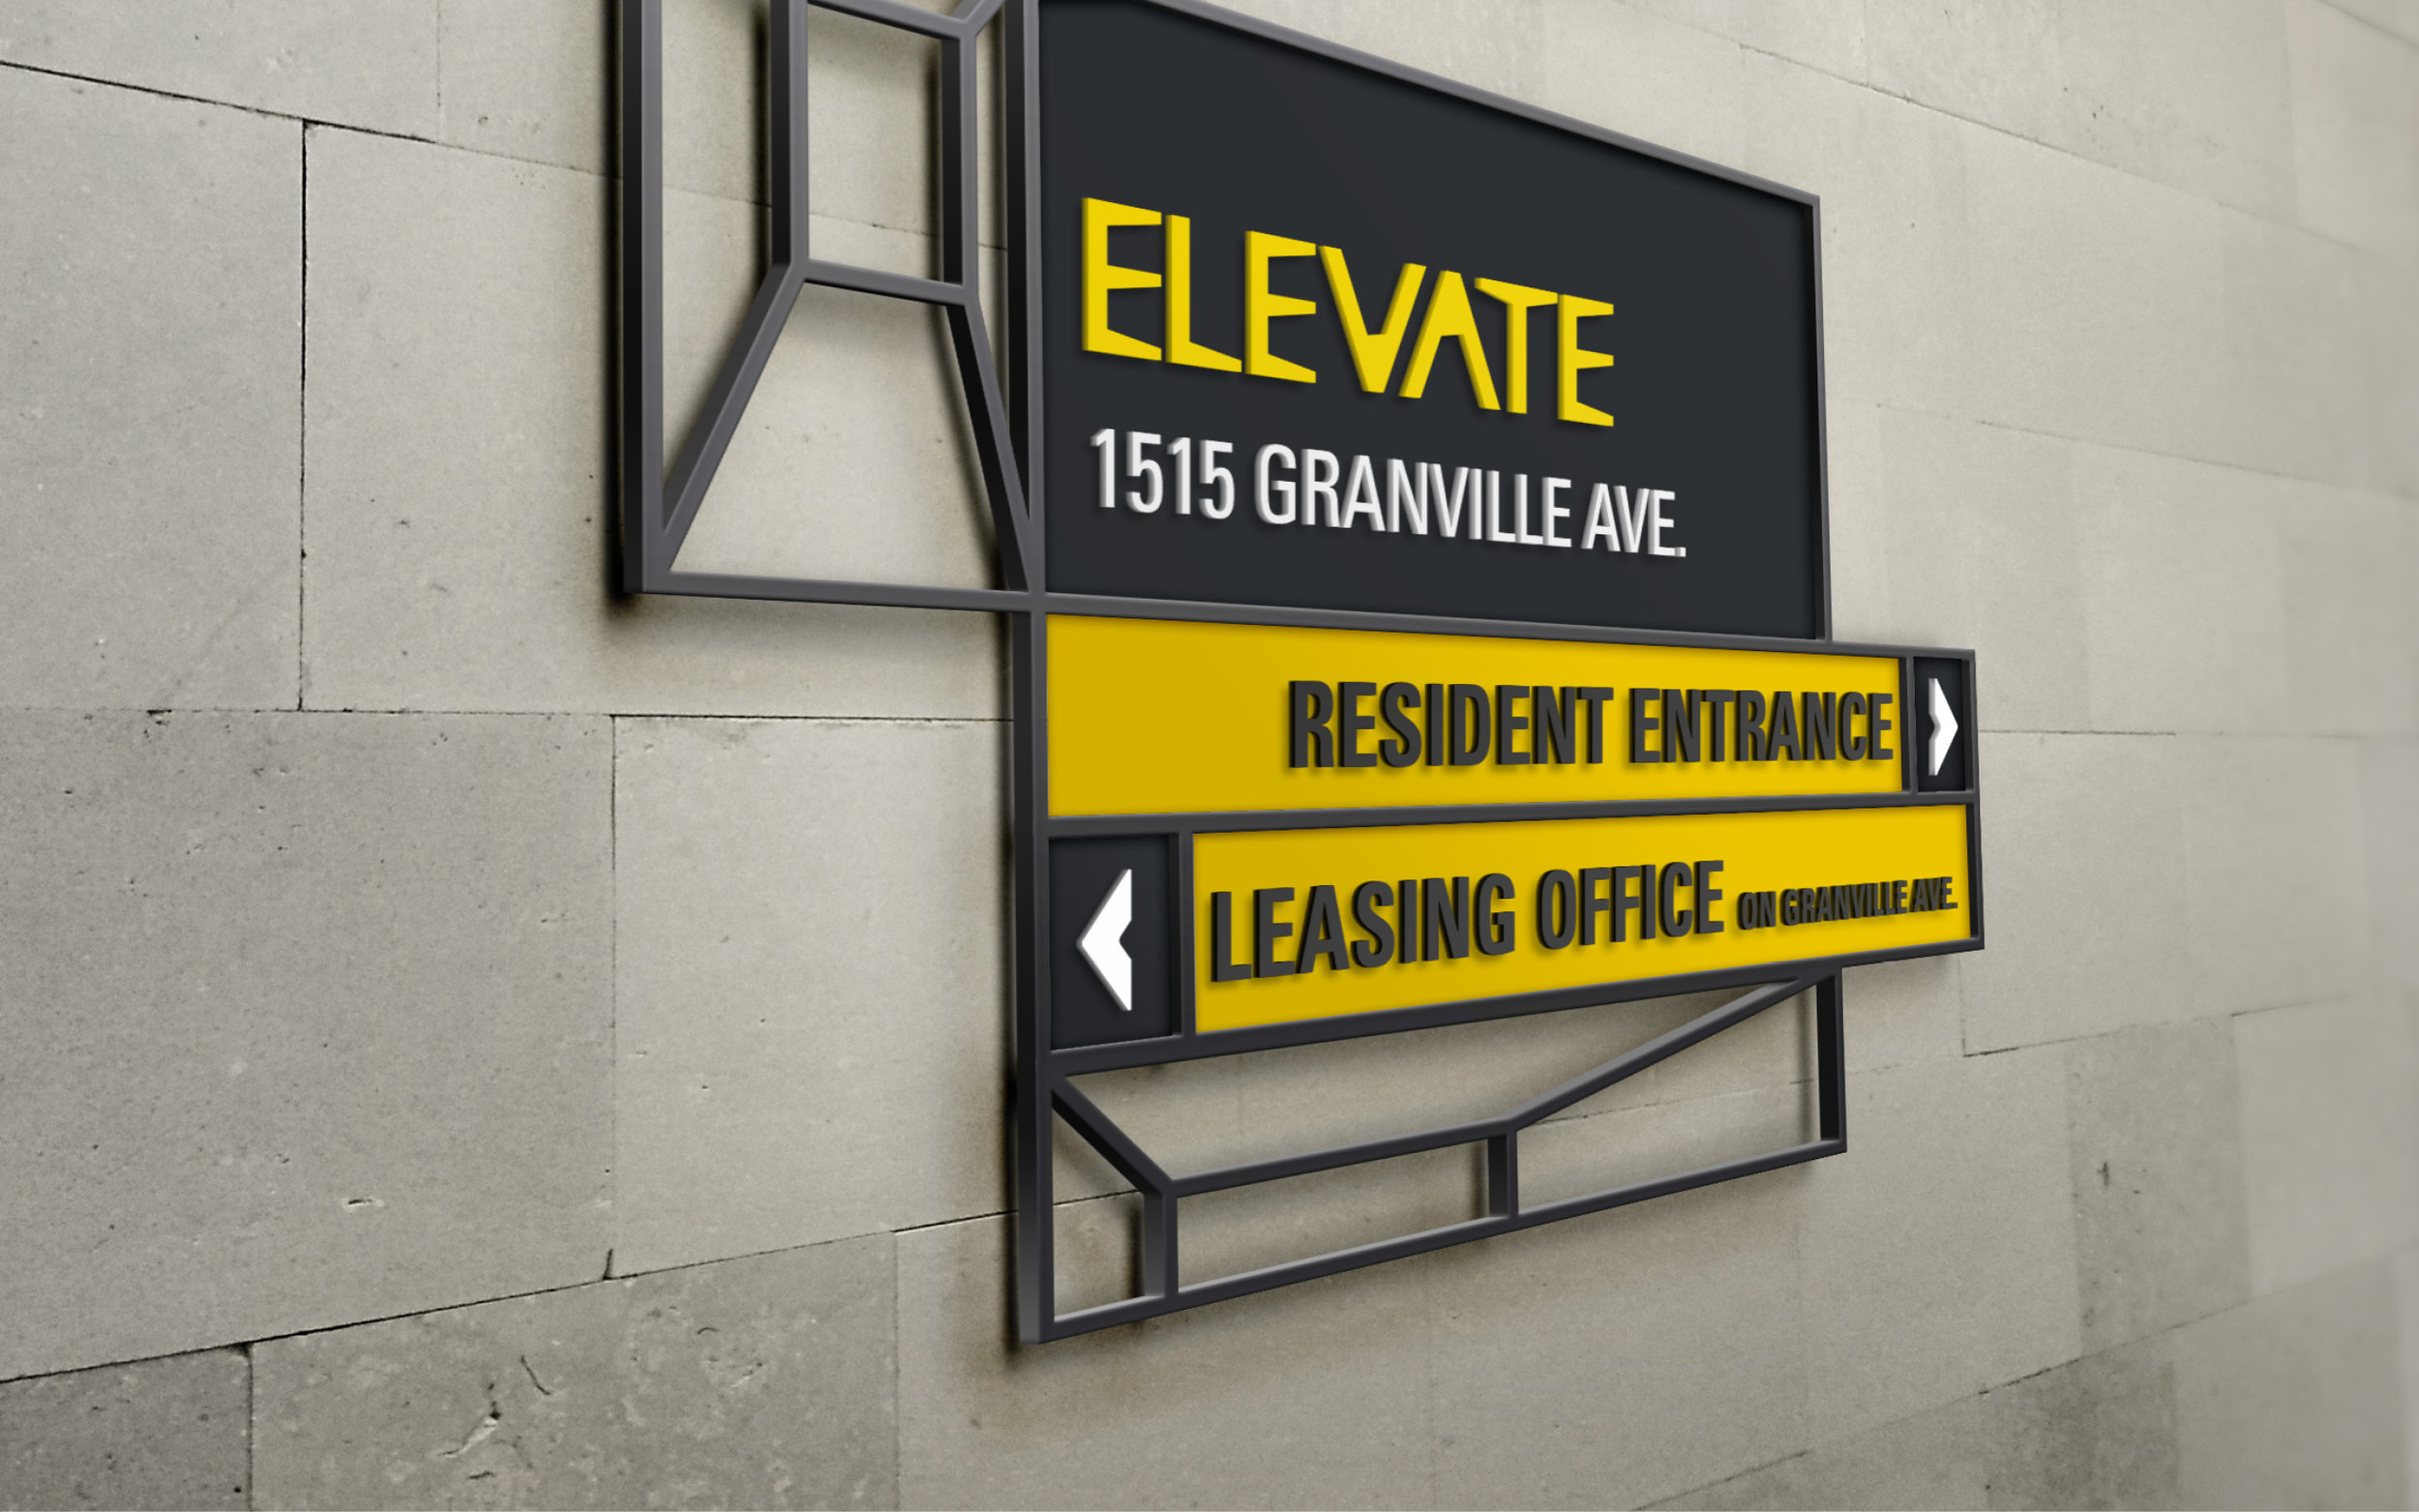 miriello-grafico_ELEVATE-Santa-Monica-Los-Angeles-apartment-branding-signage-18.jpg